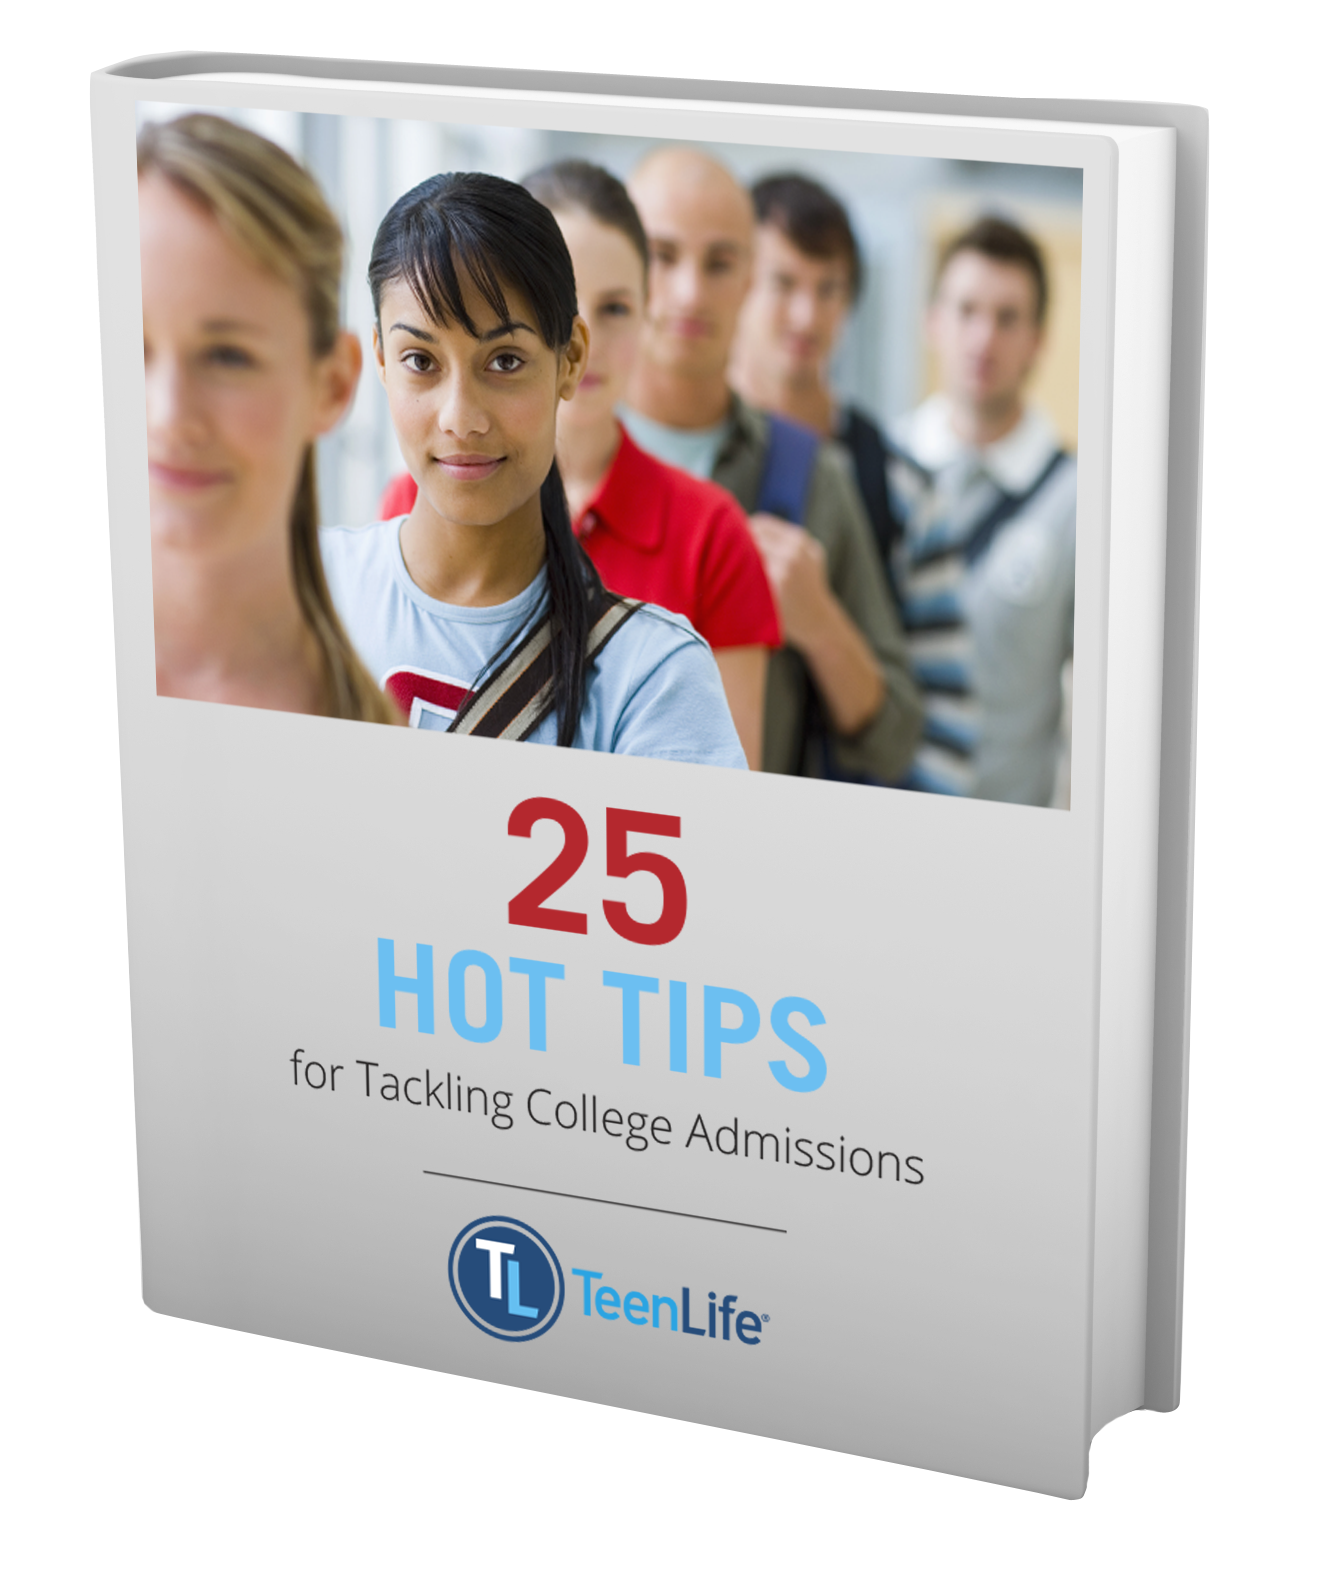 25 Hot Tips for Tackling College Admissions